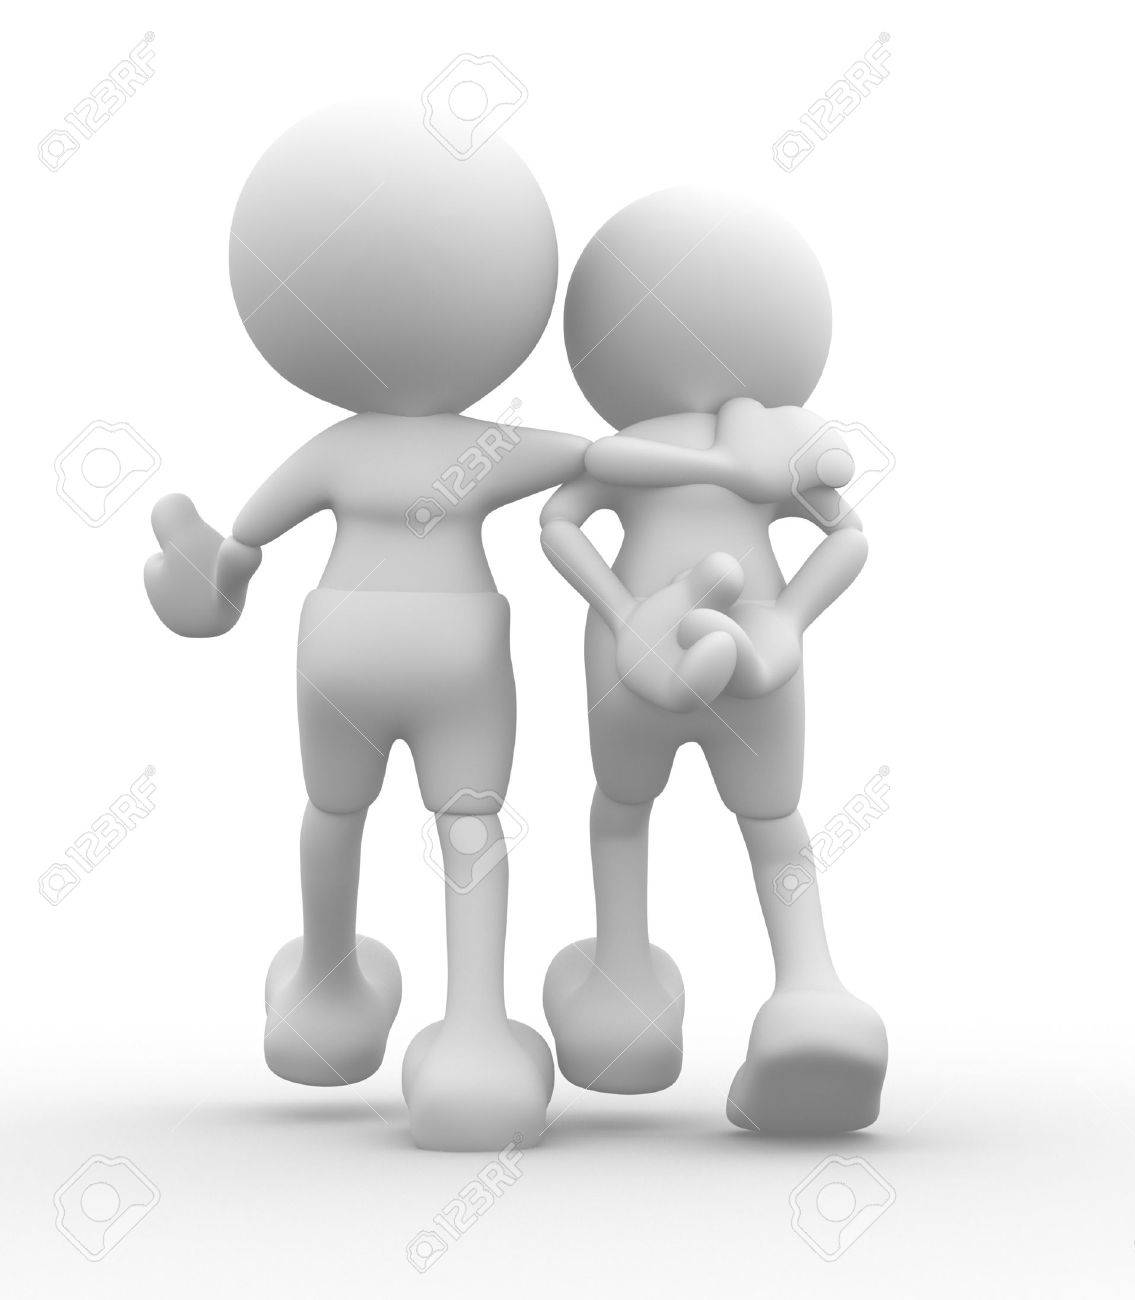 3d people - men, person walking with to hands behind and a friend  Concept of friendship Stock Photo - 14868437